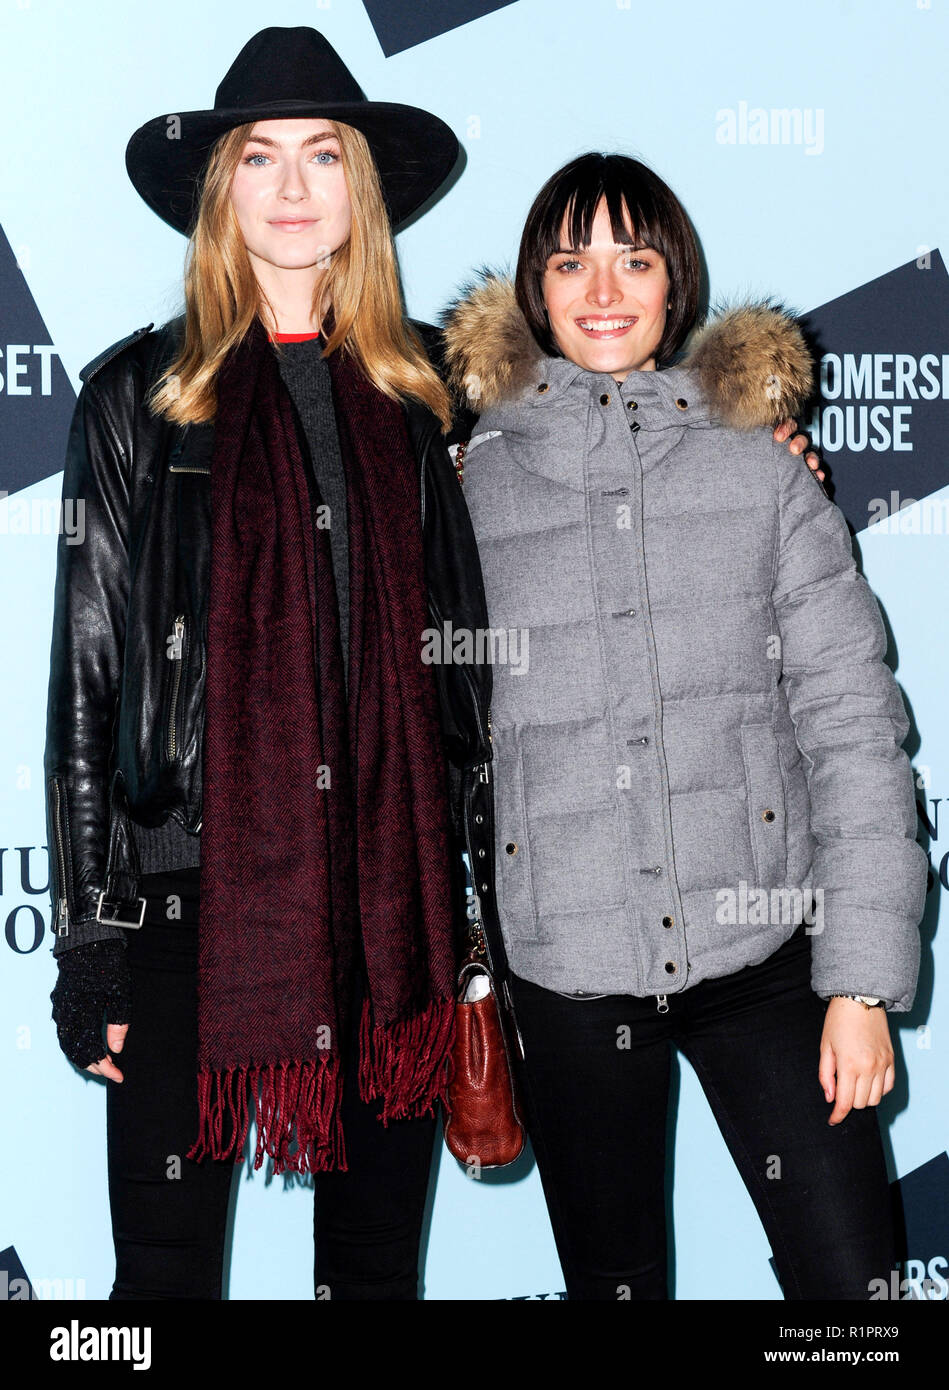 Photo Must Be Credited ©Alpha Press 080011 13/11/2018 Eve Delf and Sam Rollinson at the launch of Skate at Somerset House with Fortnum & Mason at Somerset House in London. - Stock Image